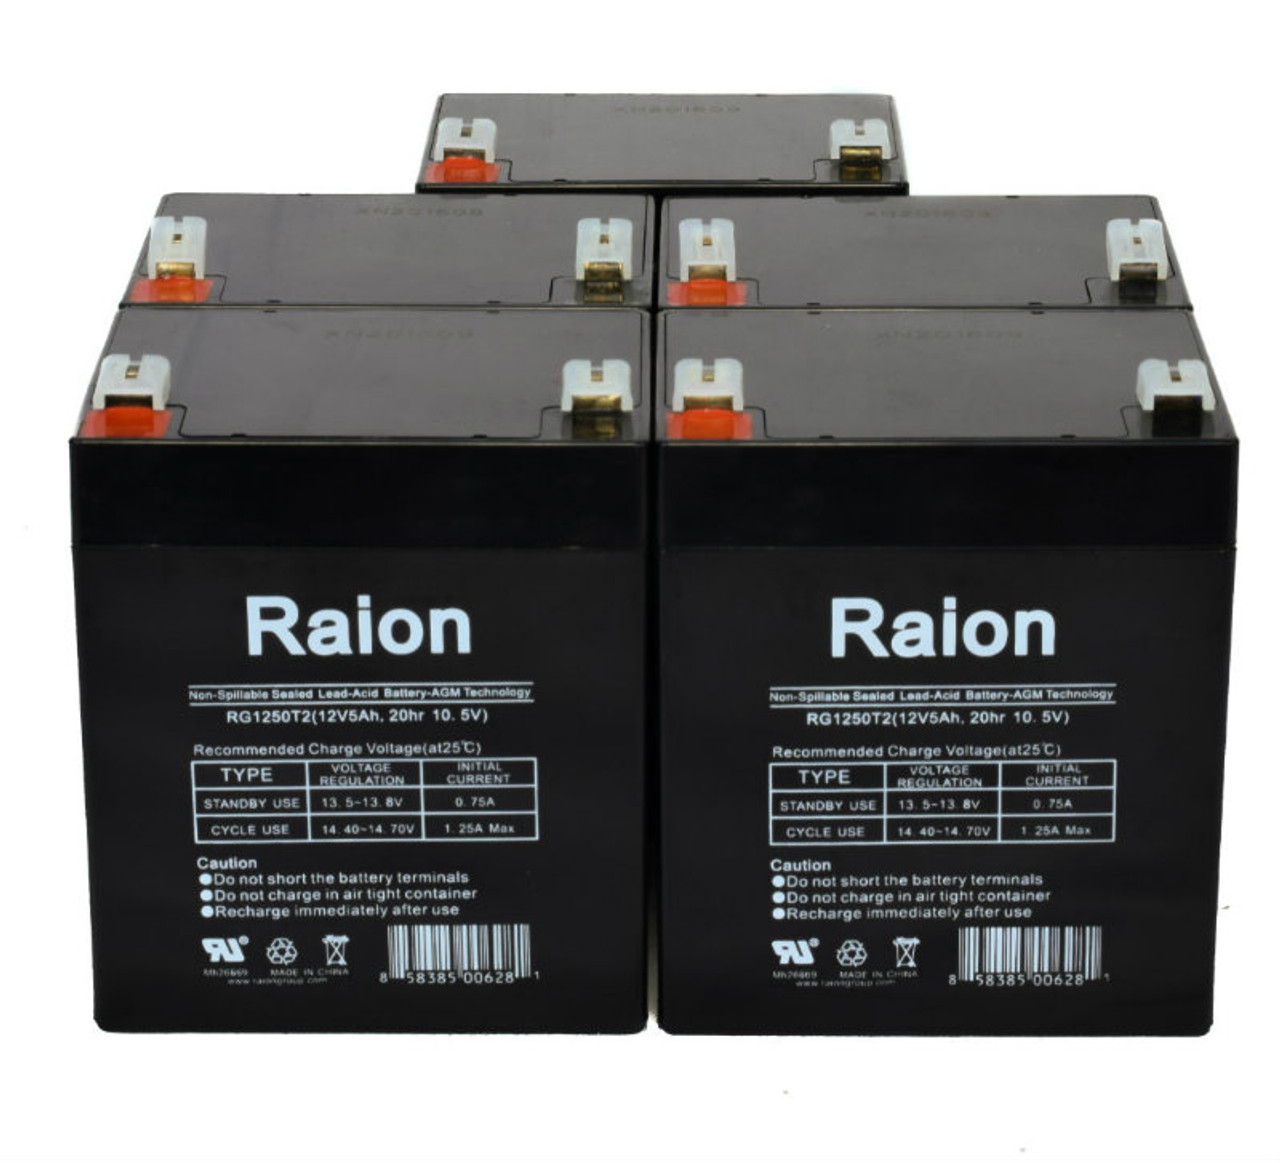 Raion Power RG1250T1 Replacement Battery for Leoch Battery LP12-4.5 - (5 Pack)